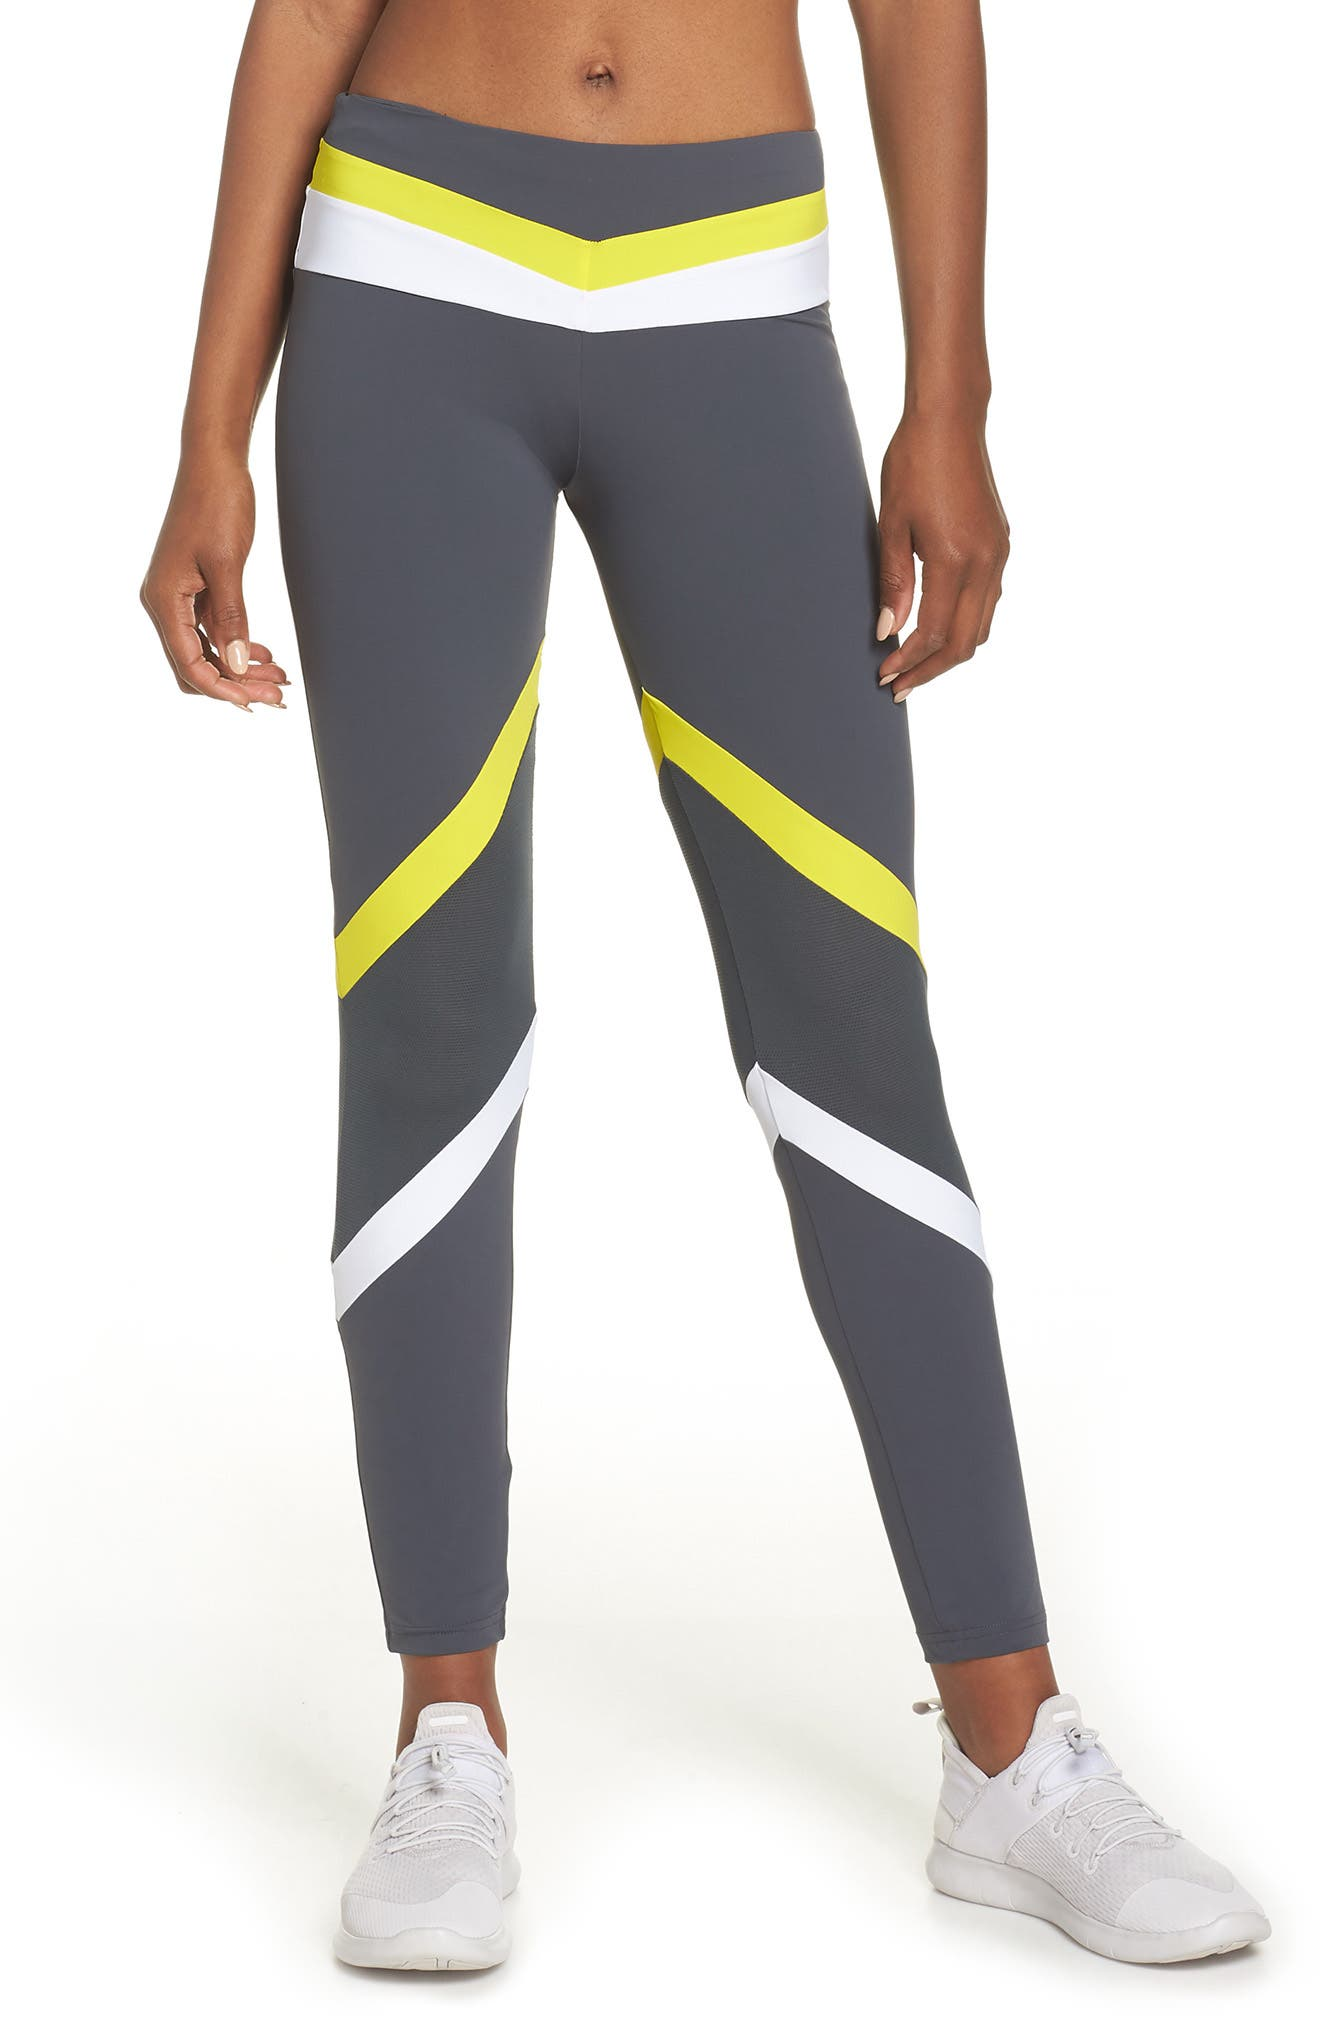 BoomBoom Athletica Tricolor Leggings,                             Main thumbnail 1, color,                             GREY/ WHITE/ YELLOW